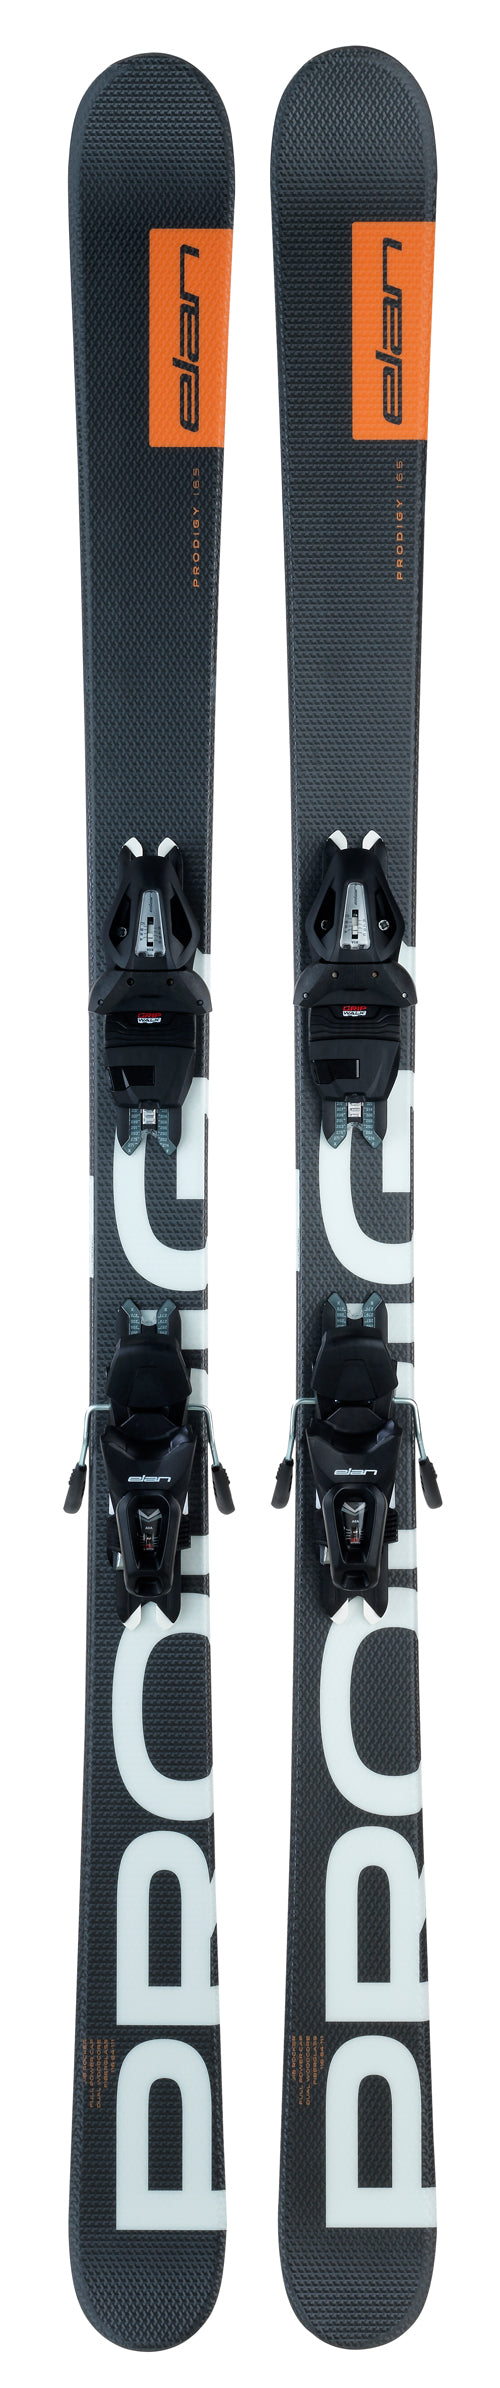 Elan Prodigy LS Skis 2021 w/bindings